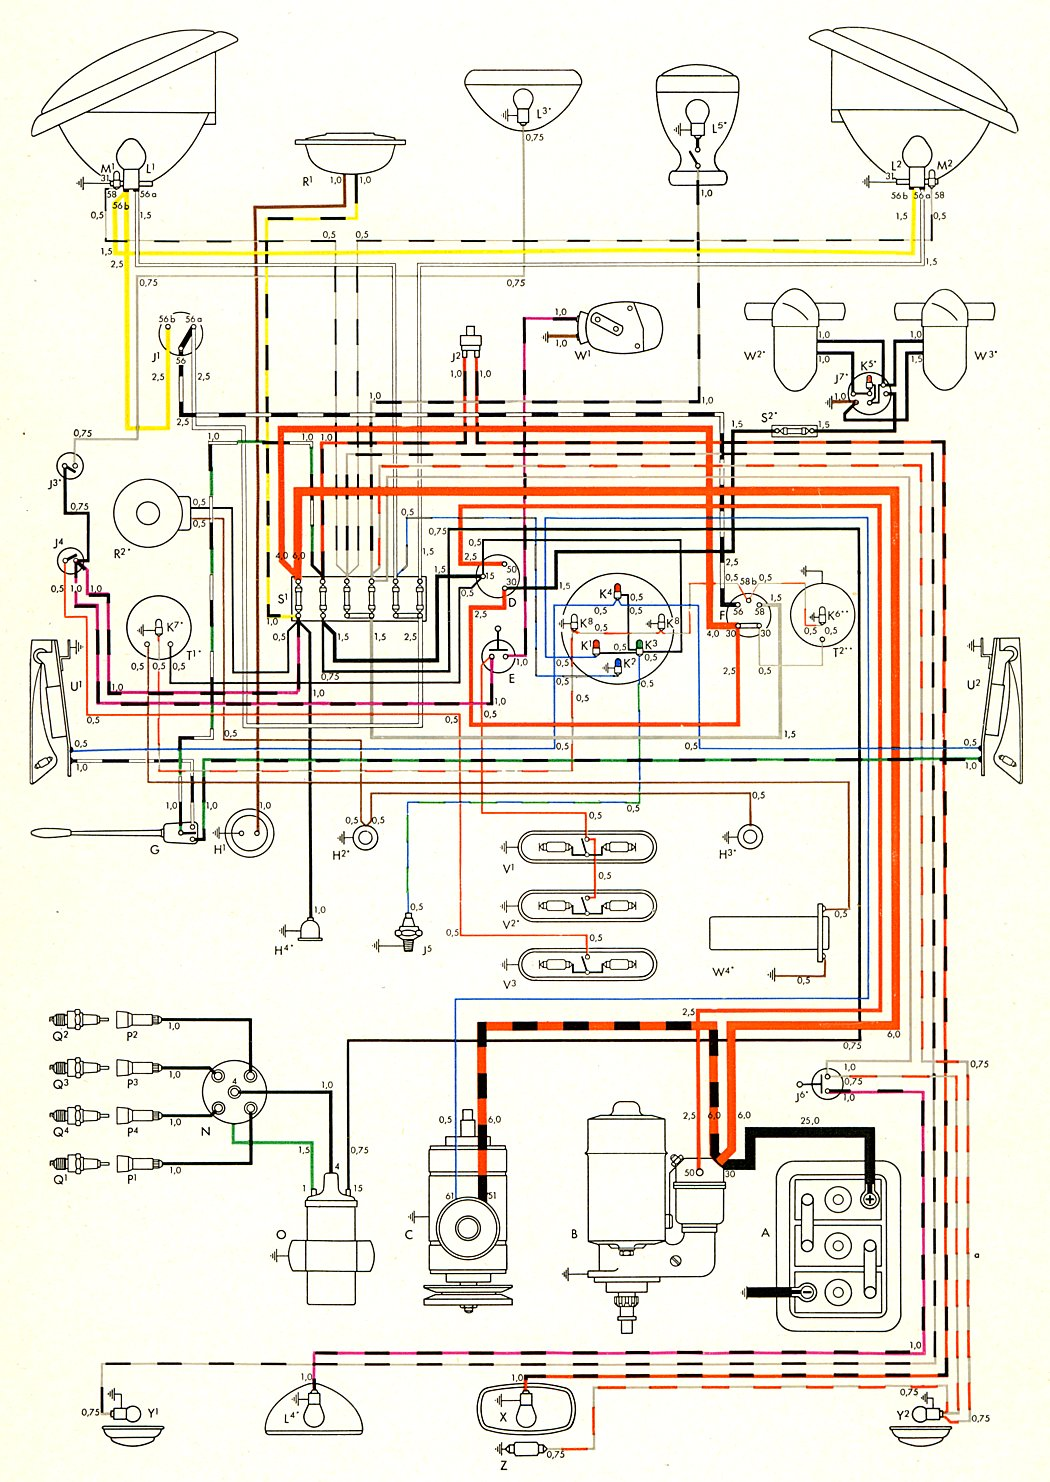 bus_nov57 1957 bus wiring diagram thegoldenbug com vw bus wiring diagram at edmiracle.co